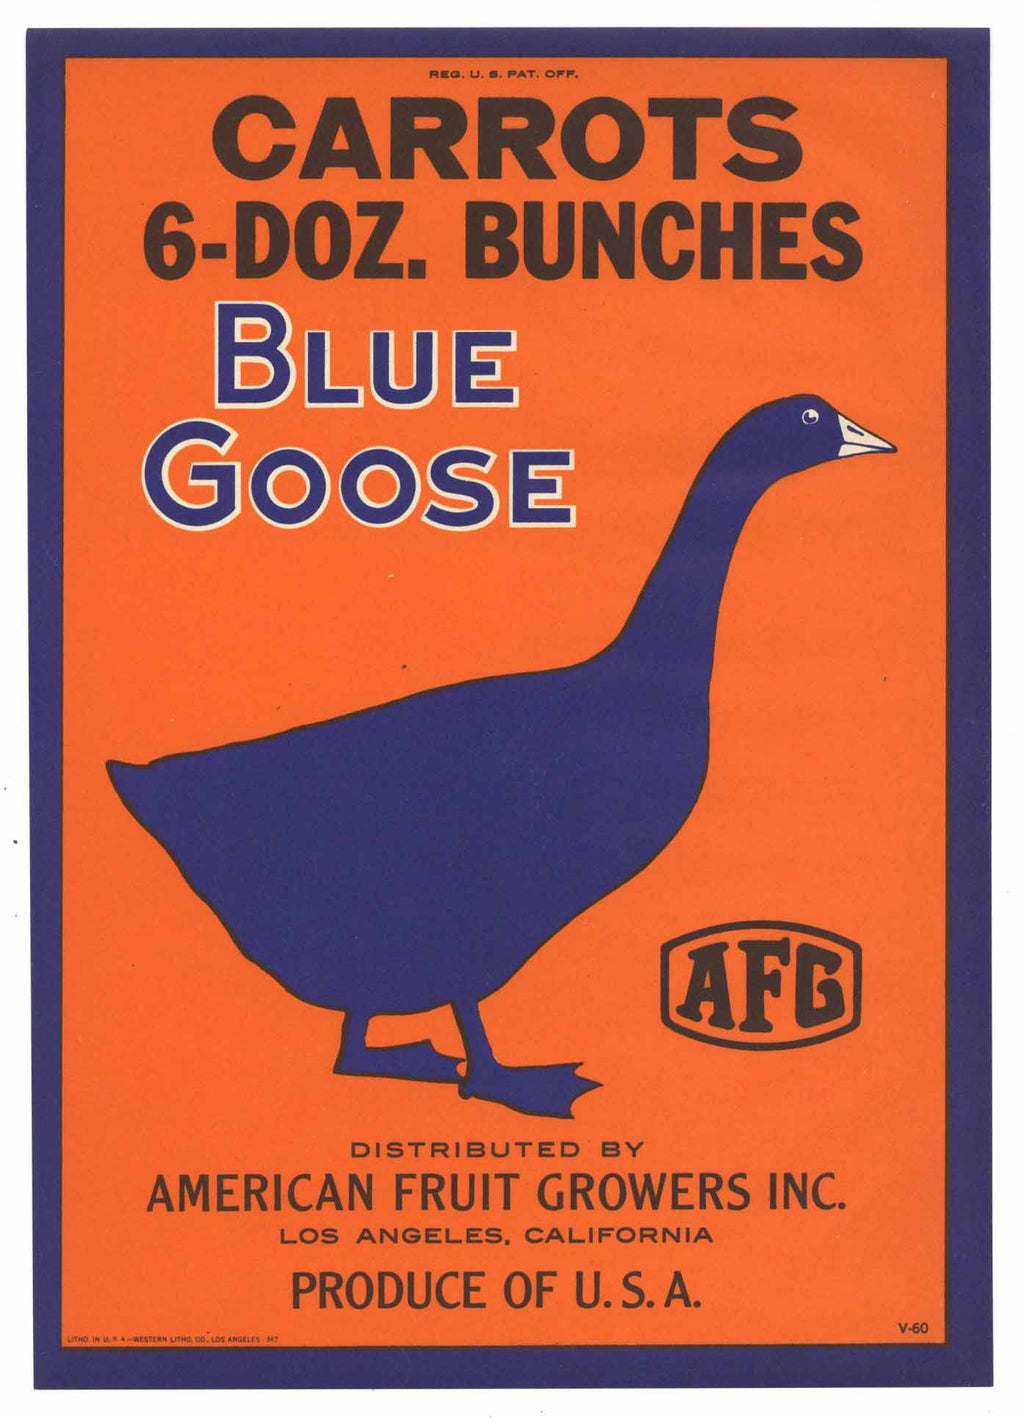 Blue Goose Brand Vintage Vegetable Crate Label